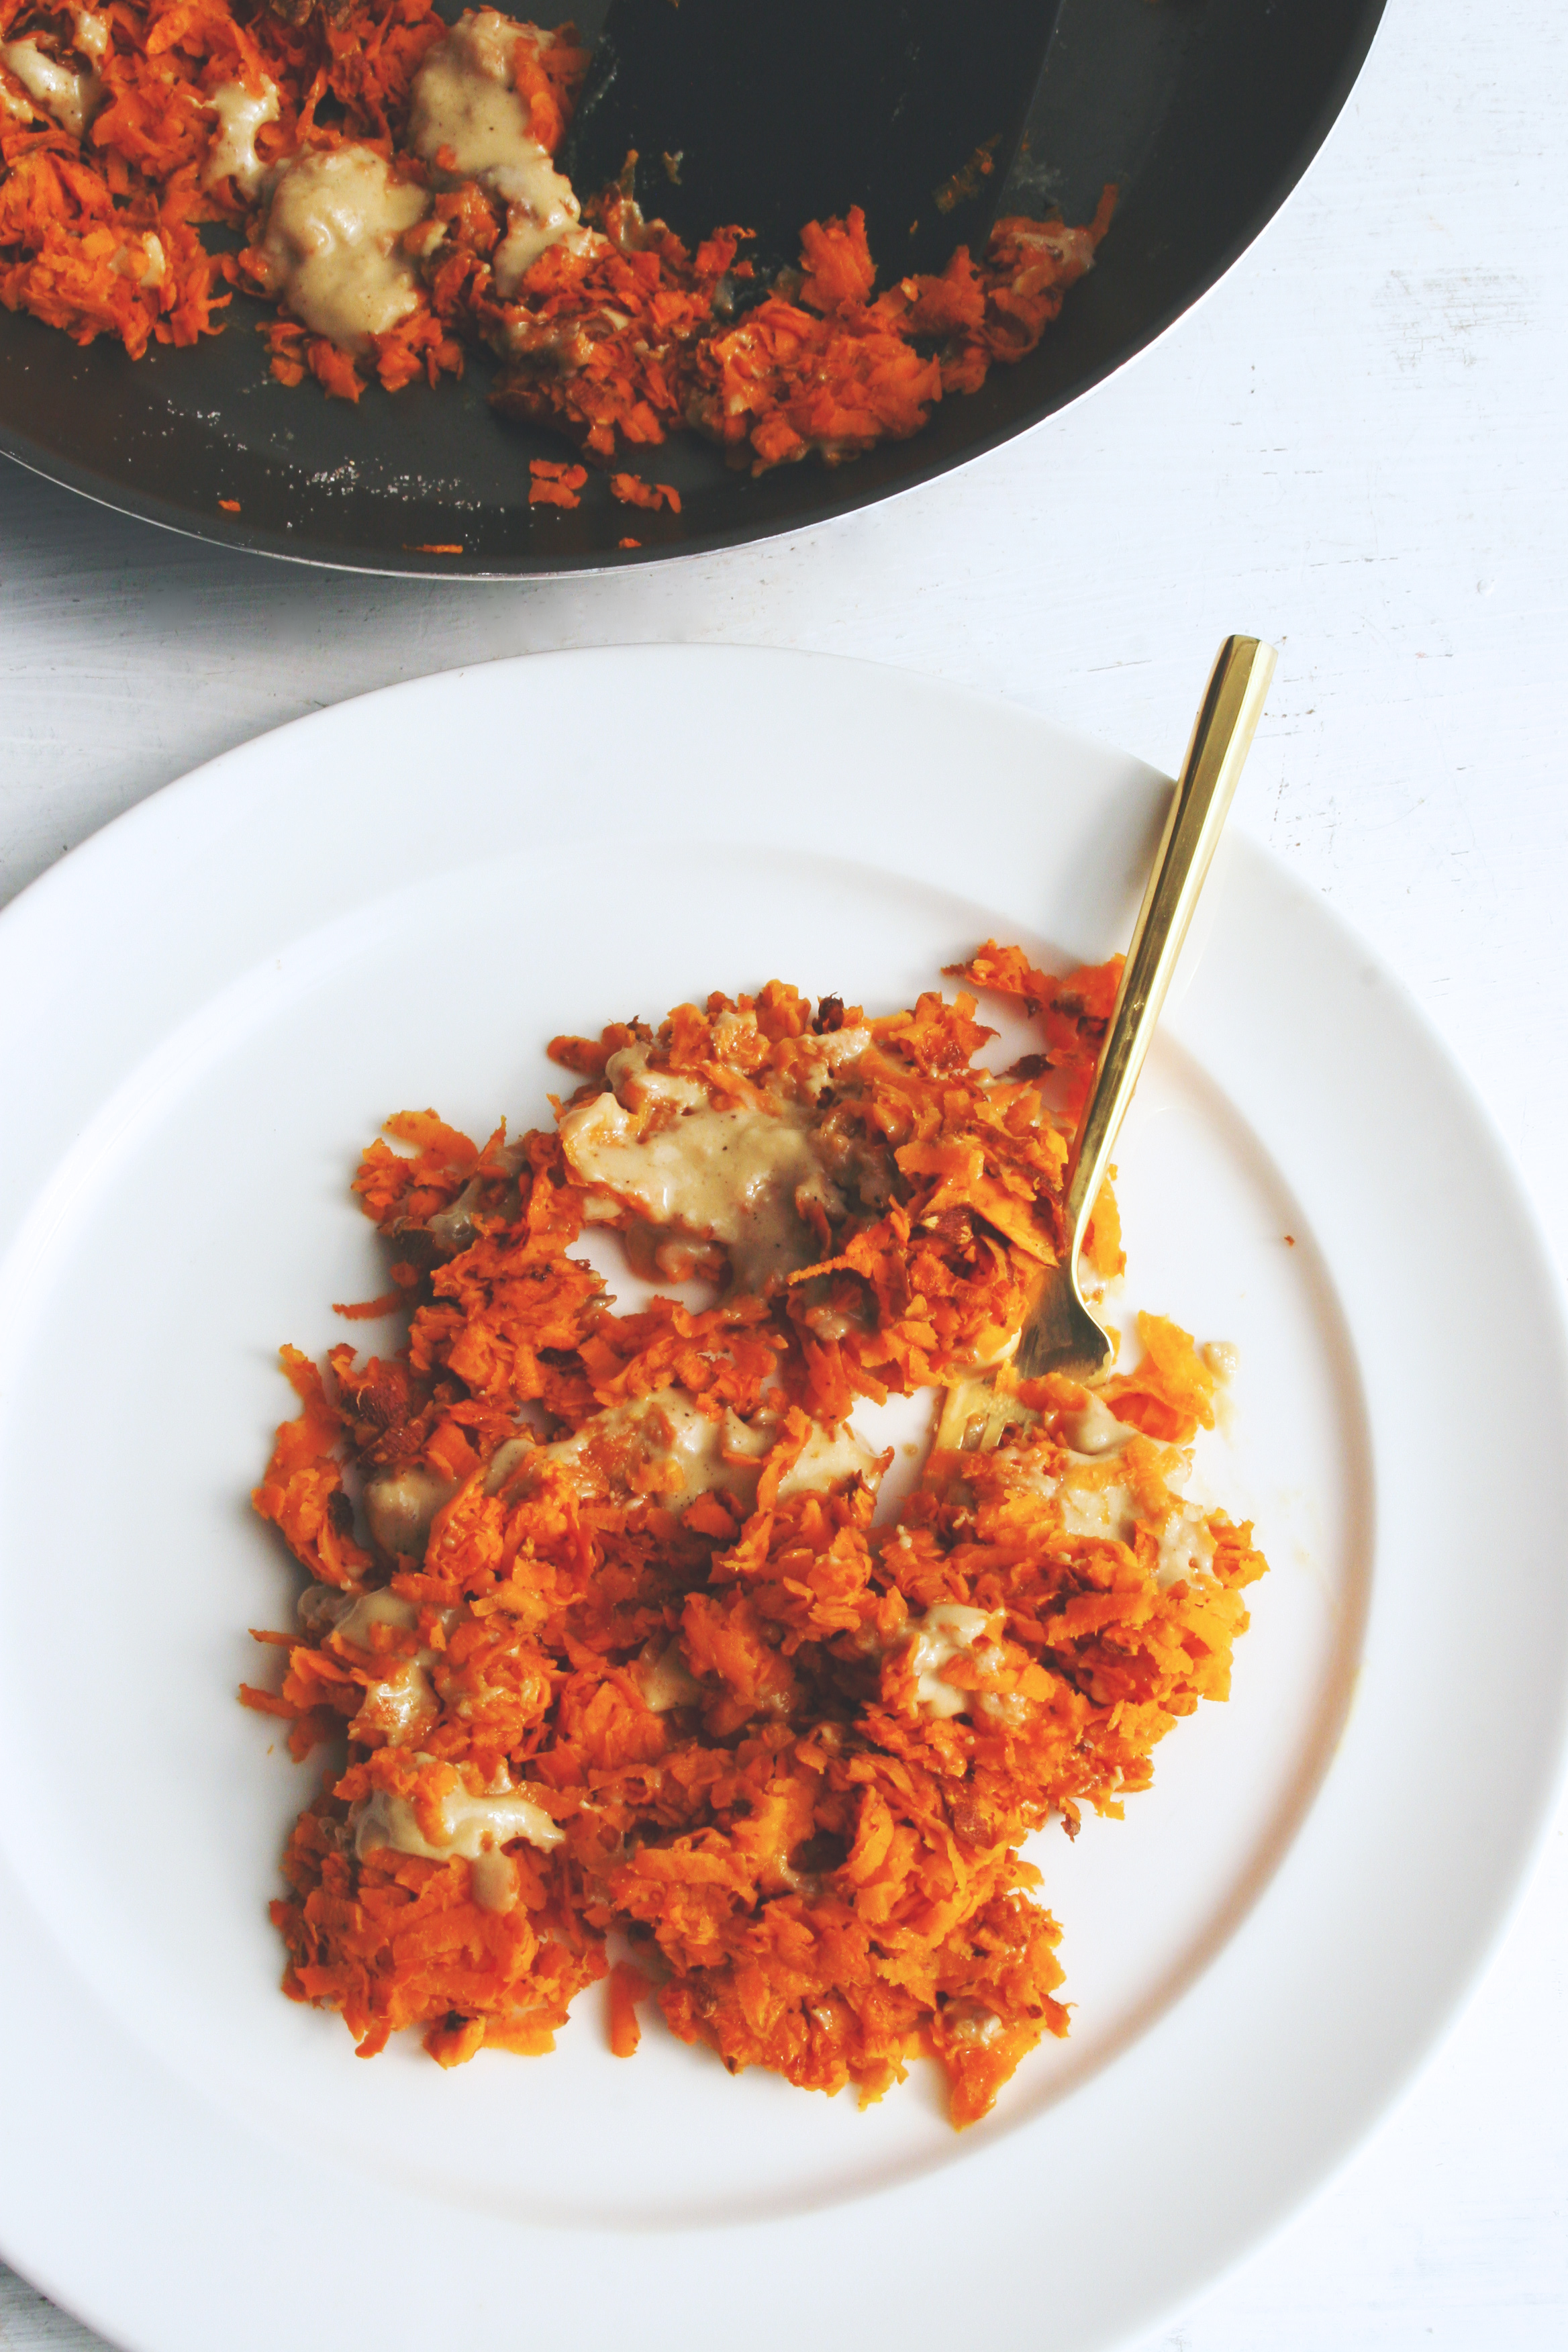 sweet potato skillet hash browns with tahini / super simple, delicious vegan & gluten-free dish